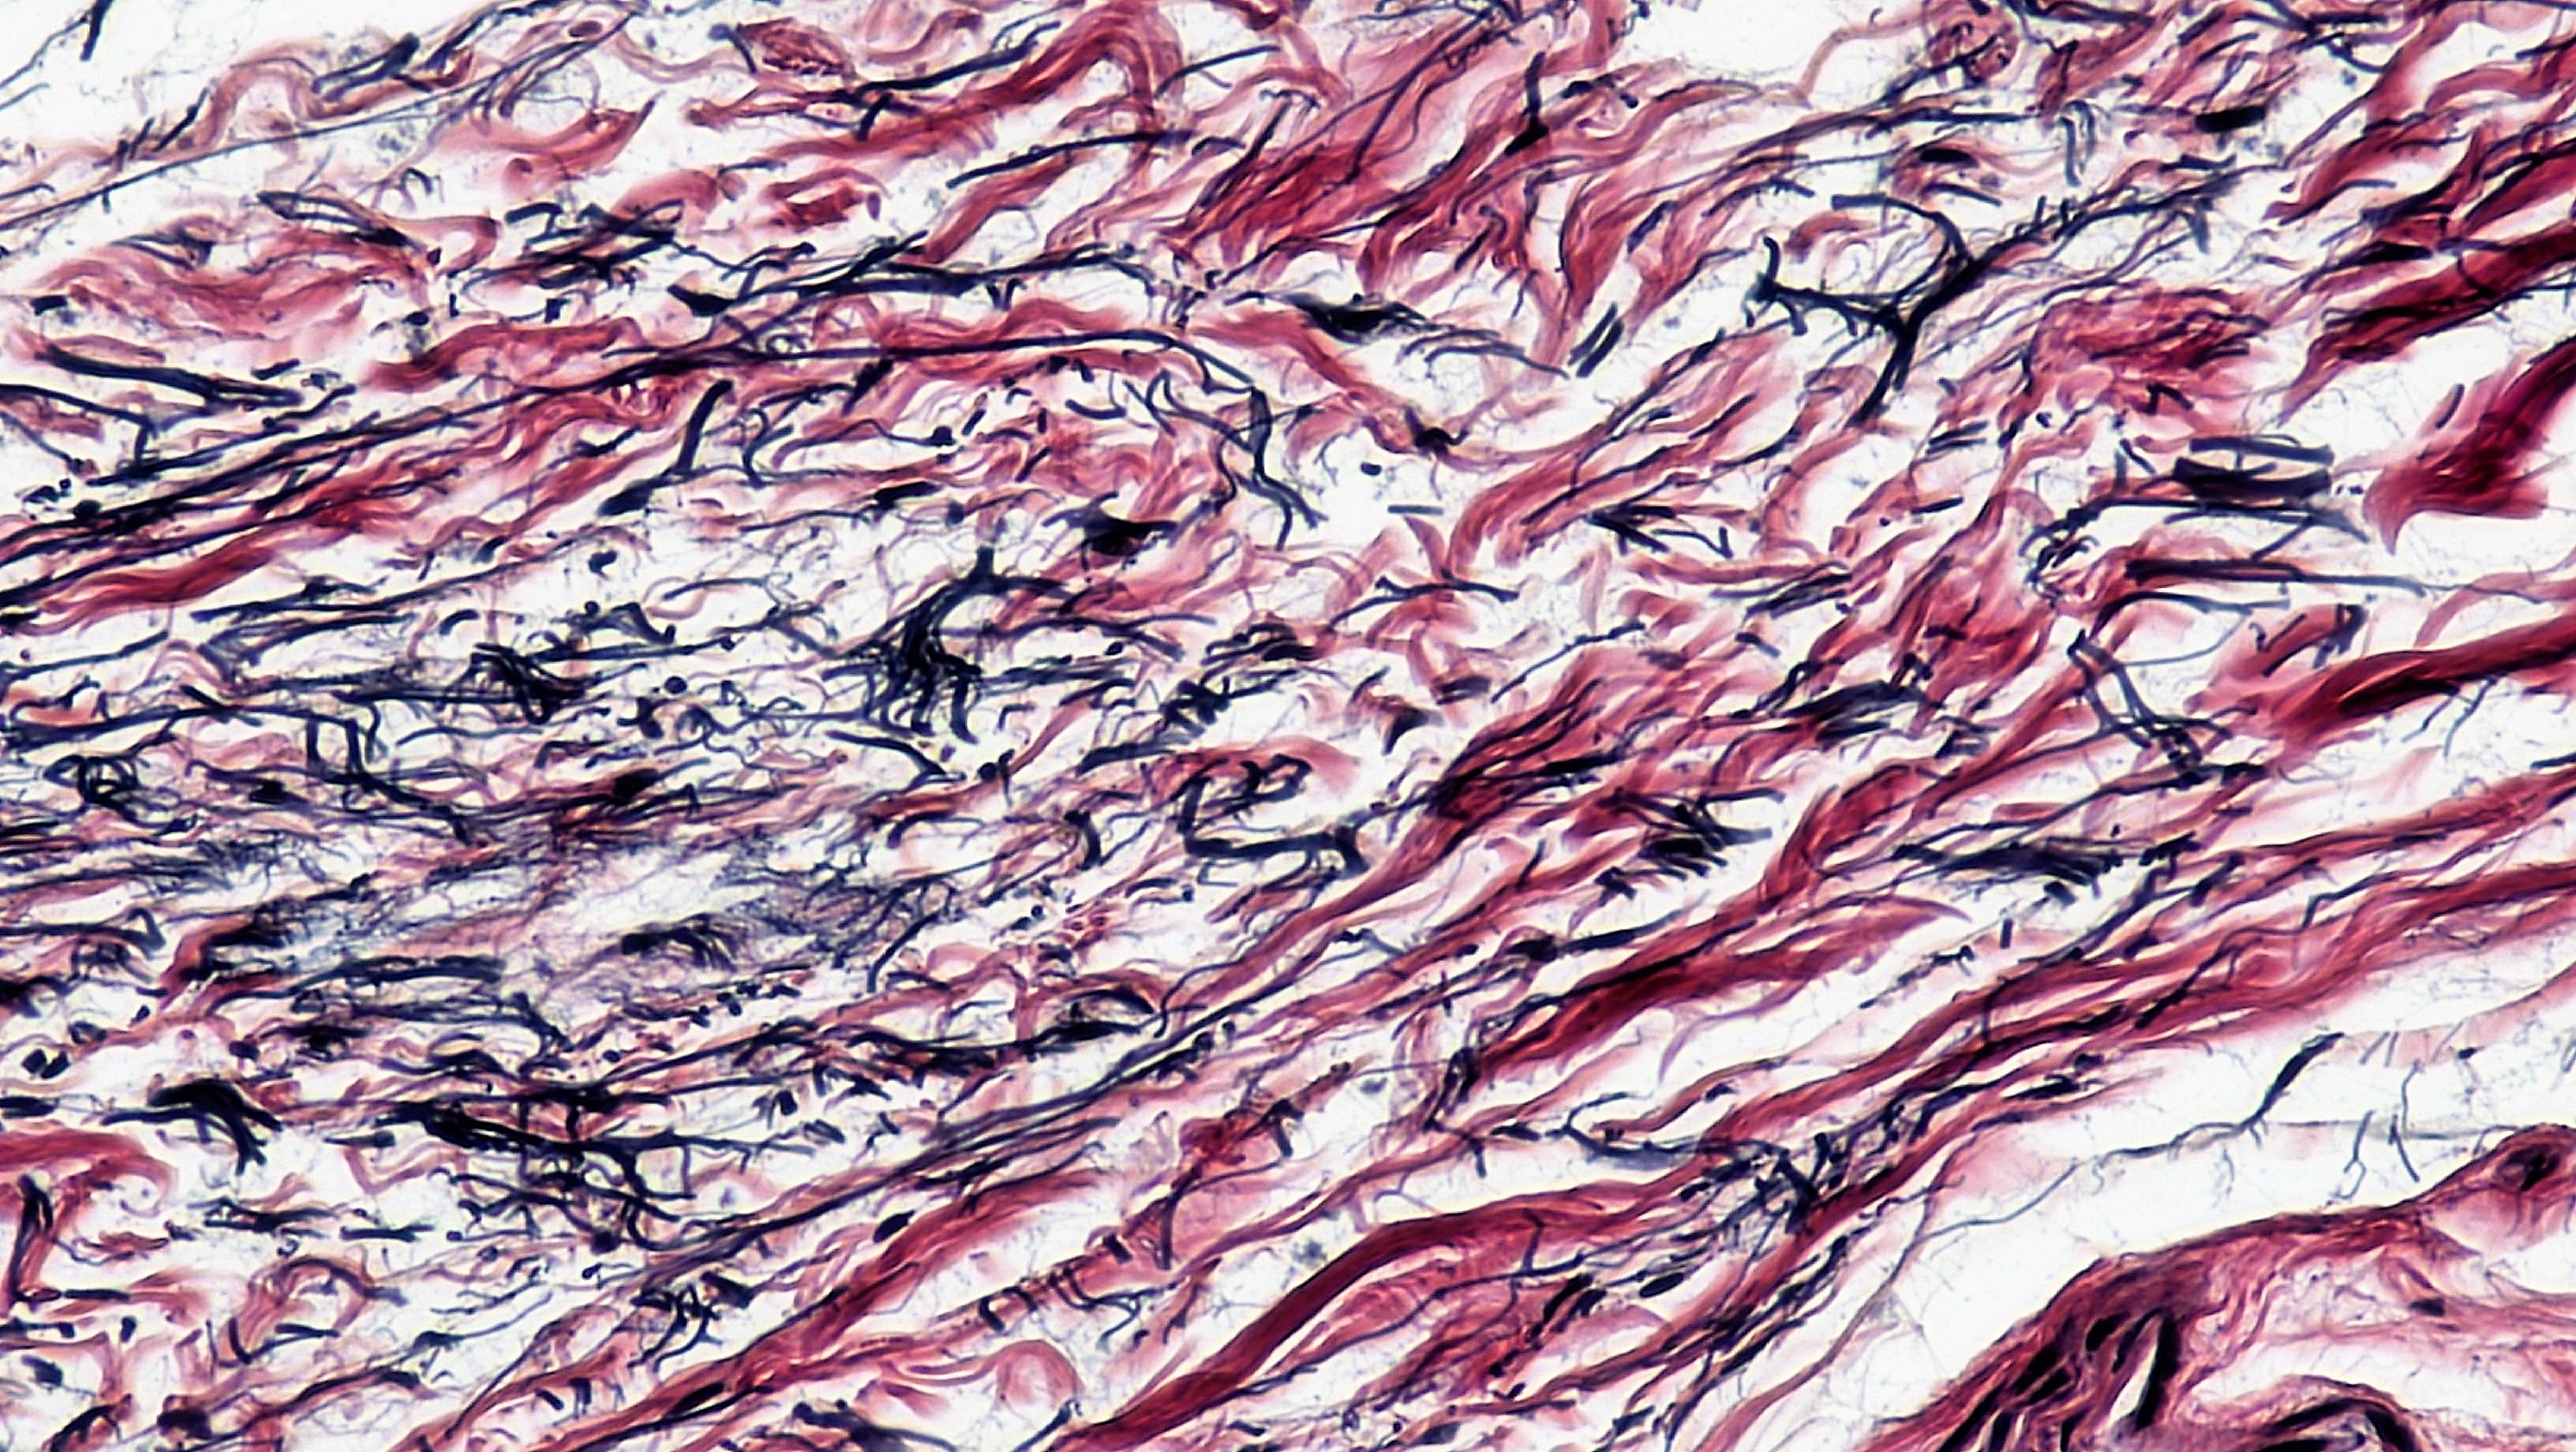 Mammalian Histology Connective Tissues Berkshire Community College Bioscience Image Library